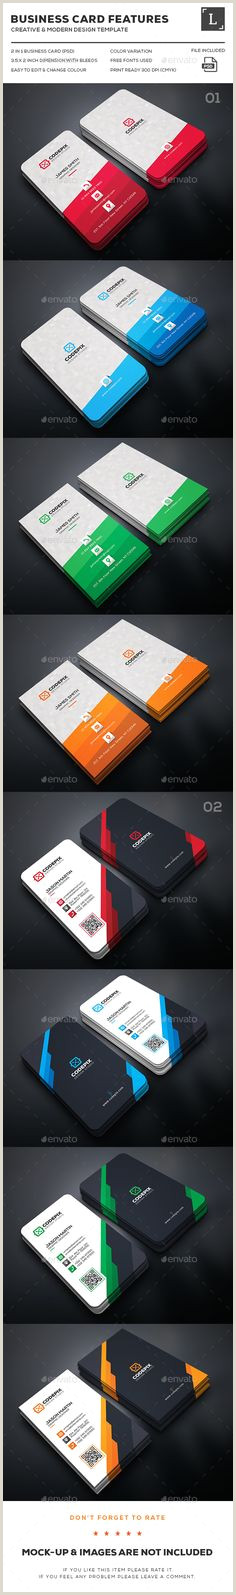 Best Business Cards To Churn 19 Best Business Card Design Images